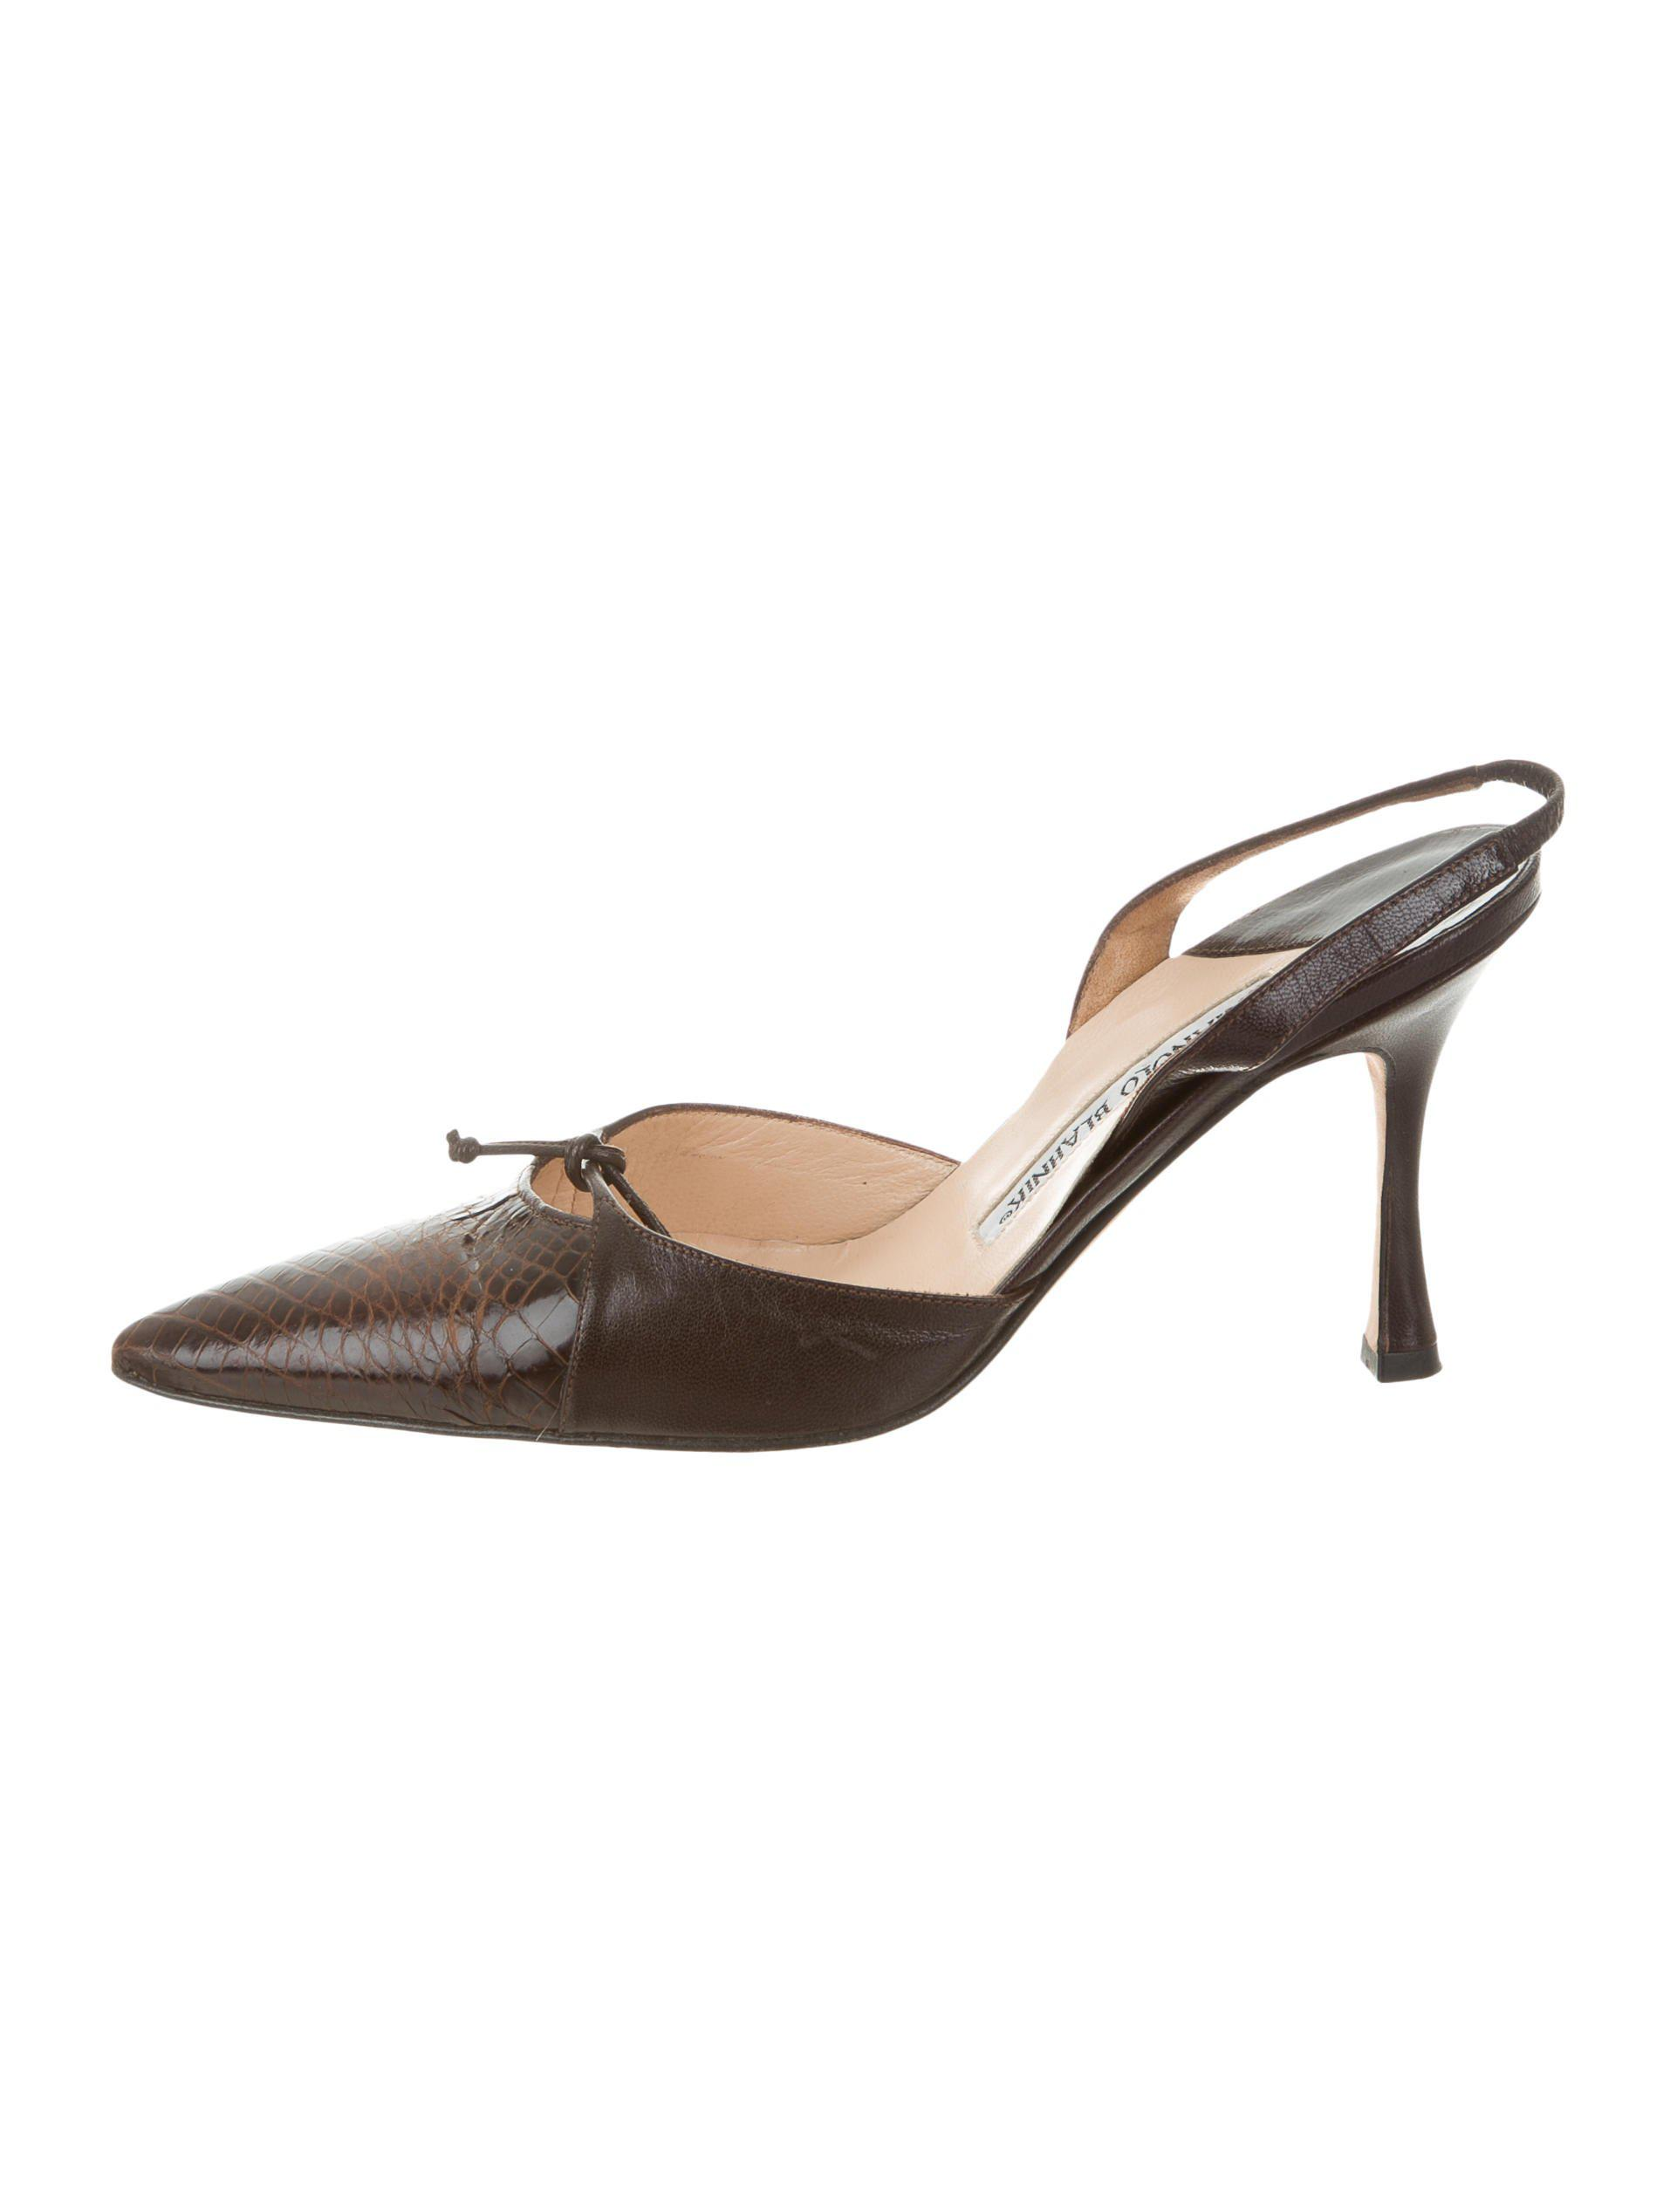 cheap explore Manolo Blahnik Crocodile-Trimmed Suede Pumps outlet sast buy cheap footlocker pictures buy cheap discount get to buy cheap price EZgl7Ax